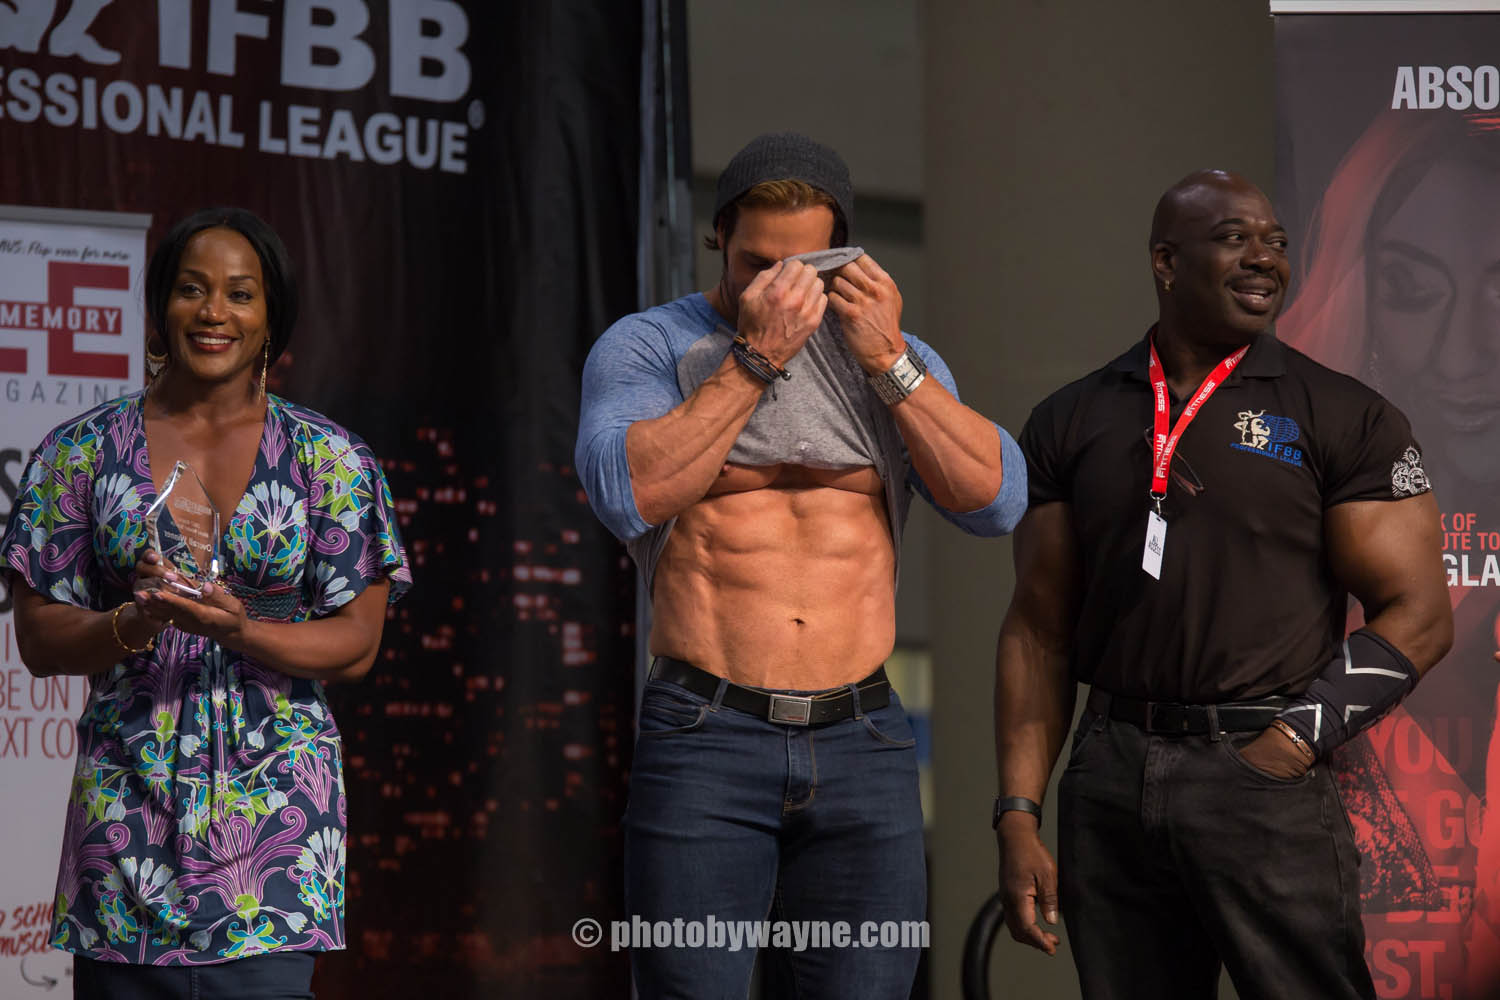 27-toronto-pro-supershow-judges-on-stage.jpg